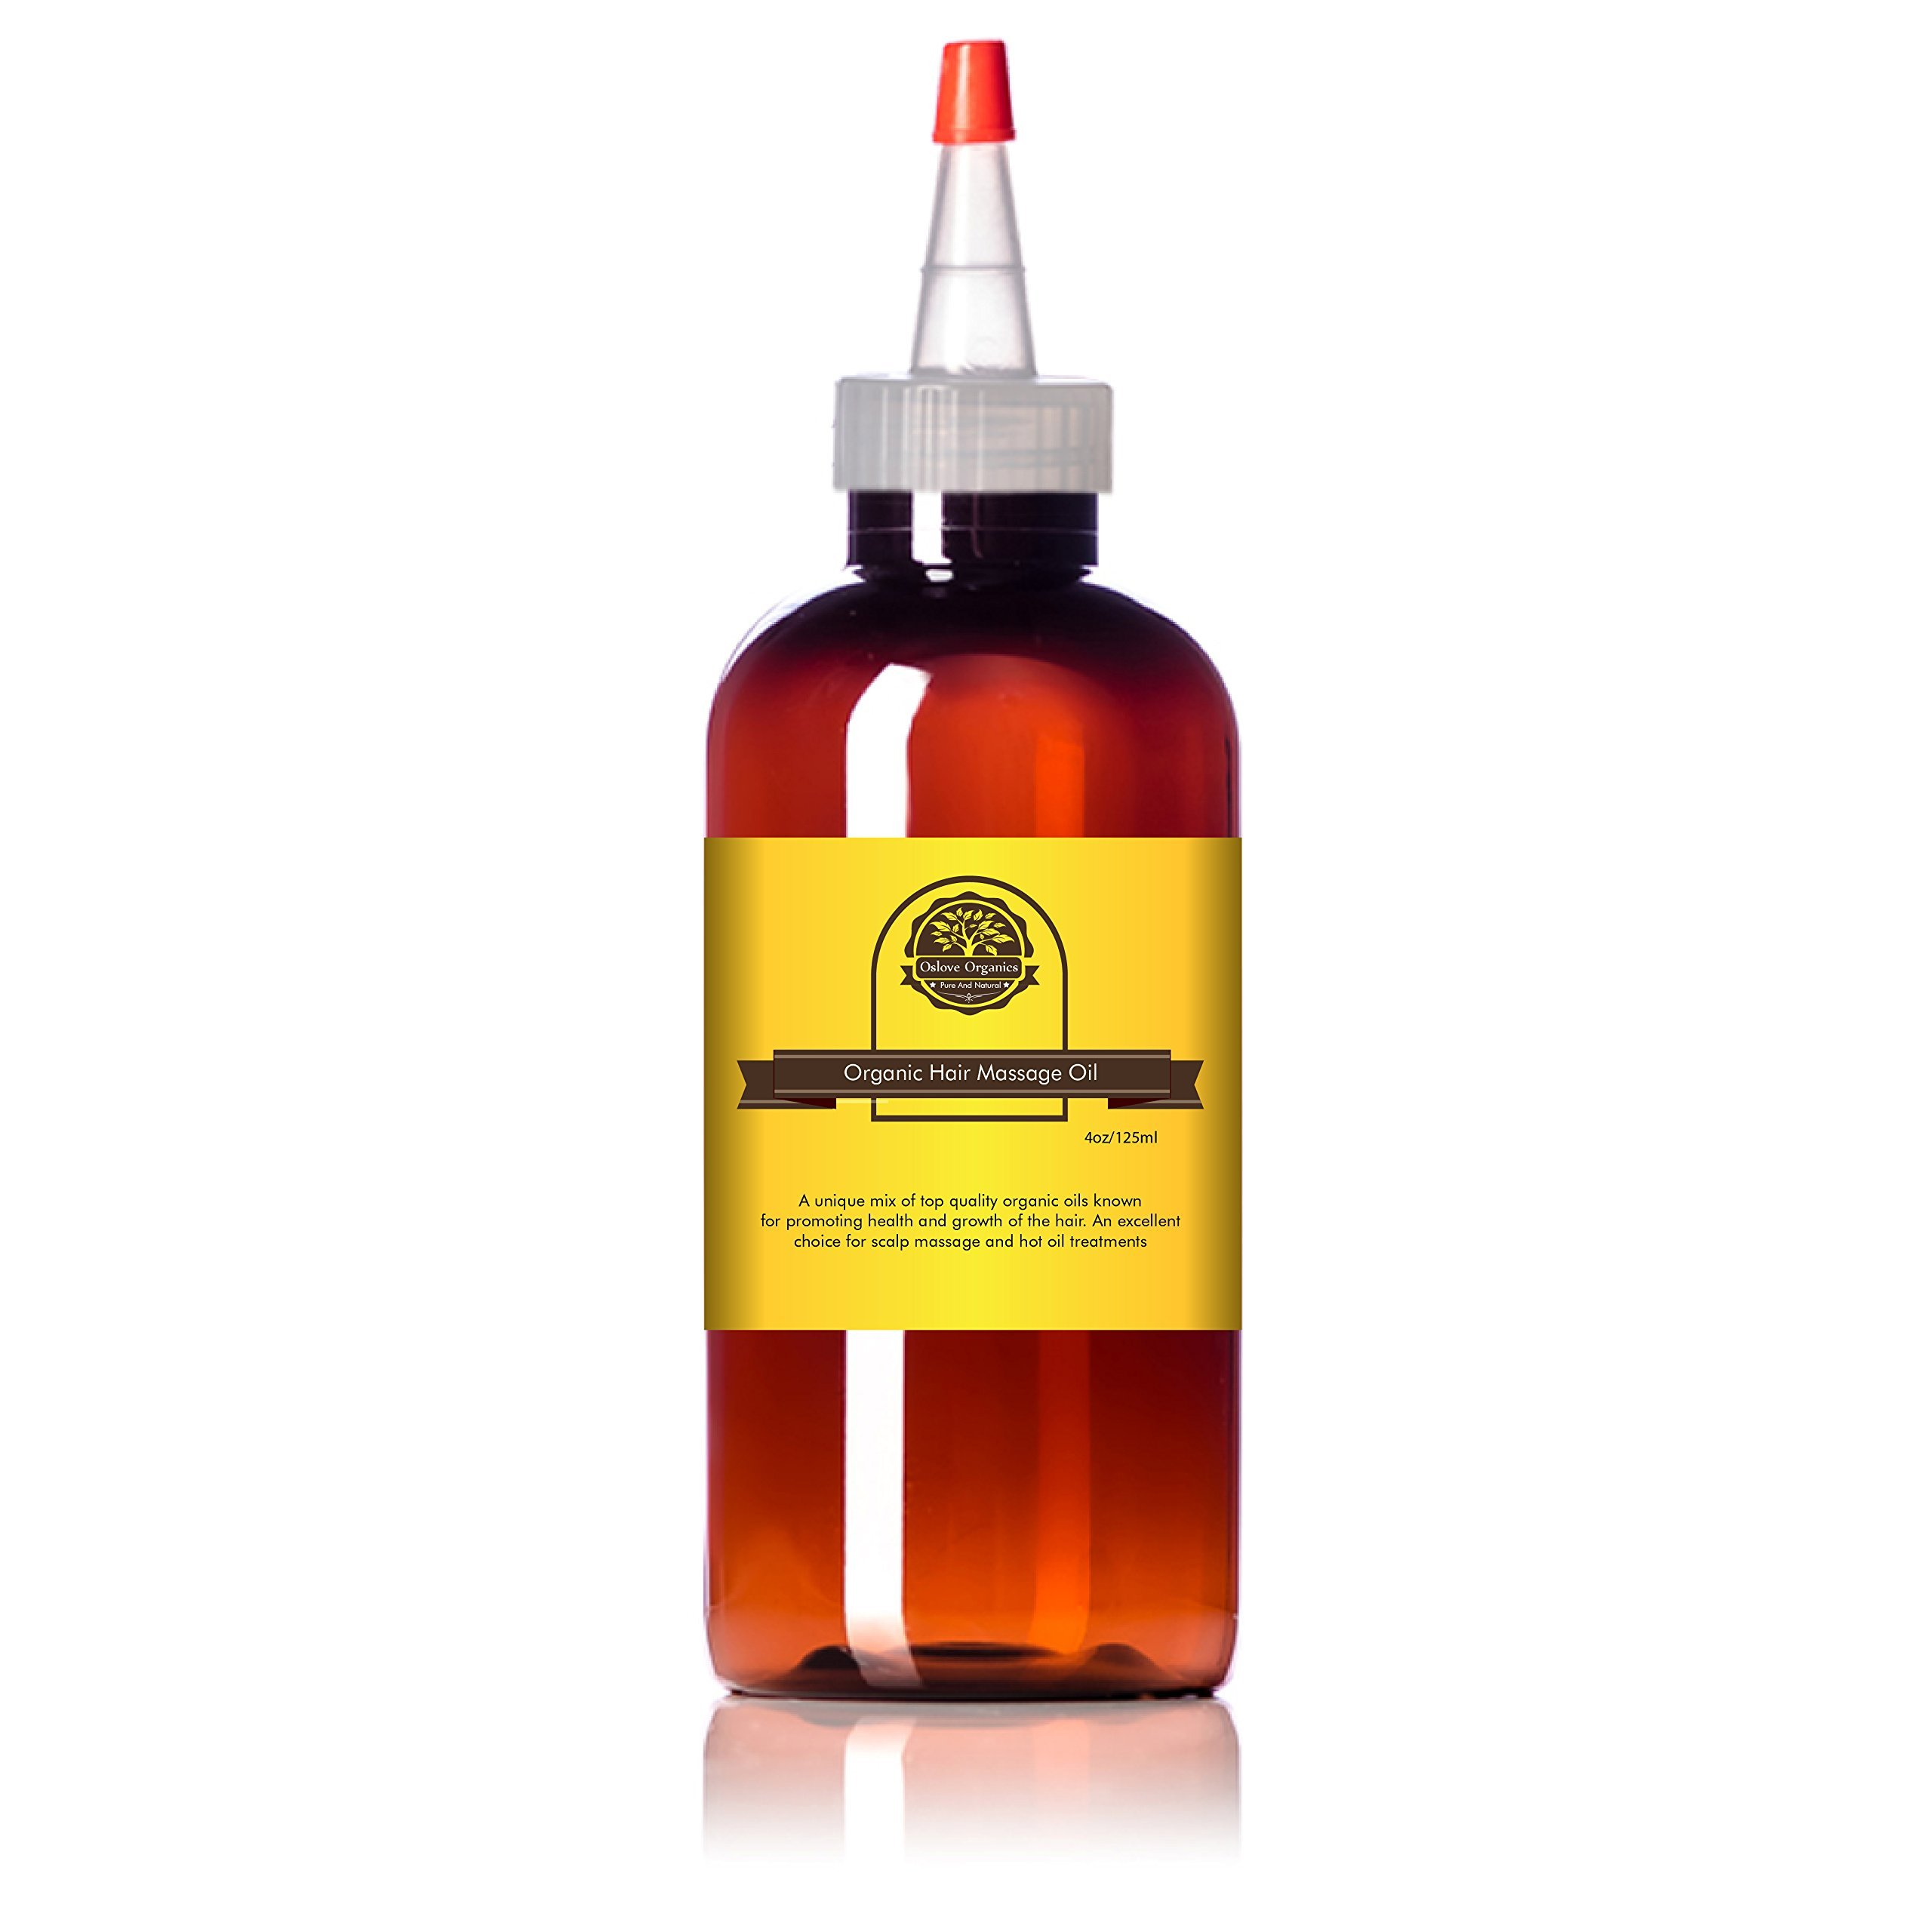 Organic Hair growth oil by Oslove Organics 4oz bottle-Unique blend of virgin organic carrier oils for fast hair growth